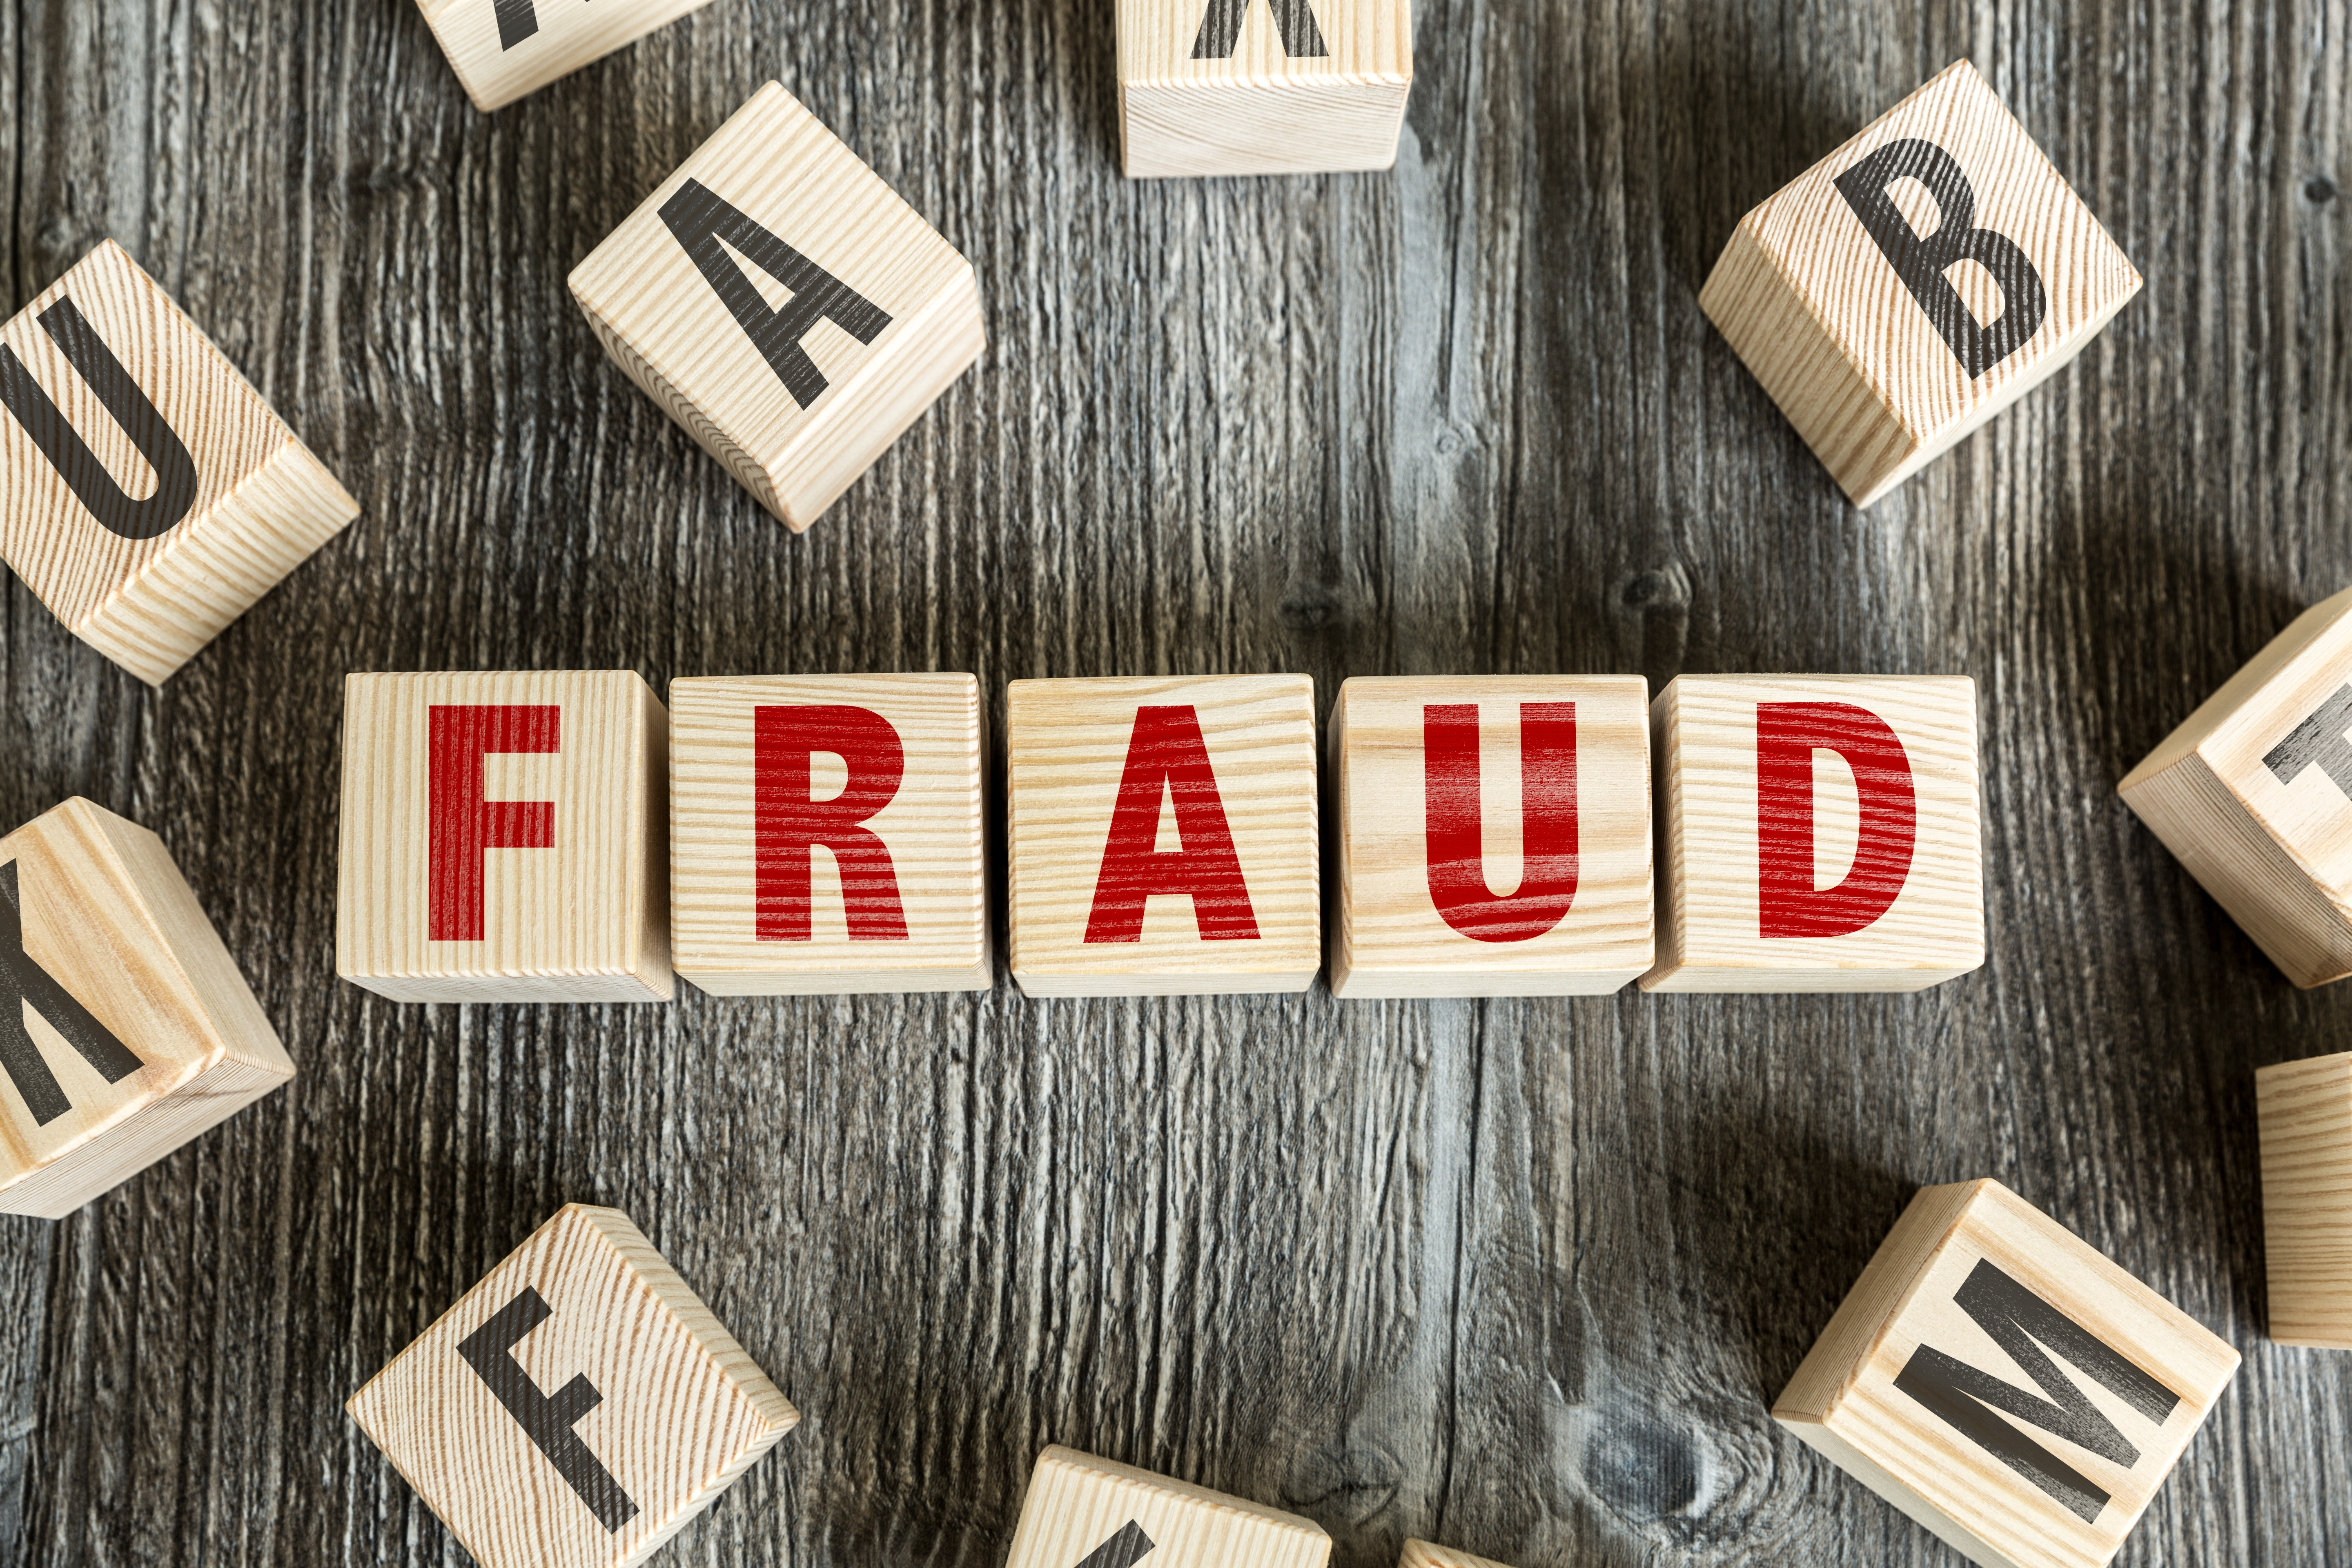 Baby steps lead to online banking fraud